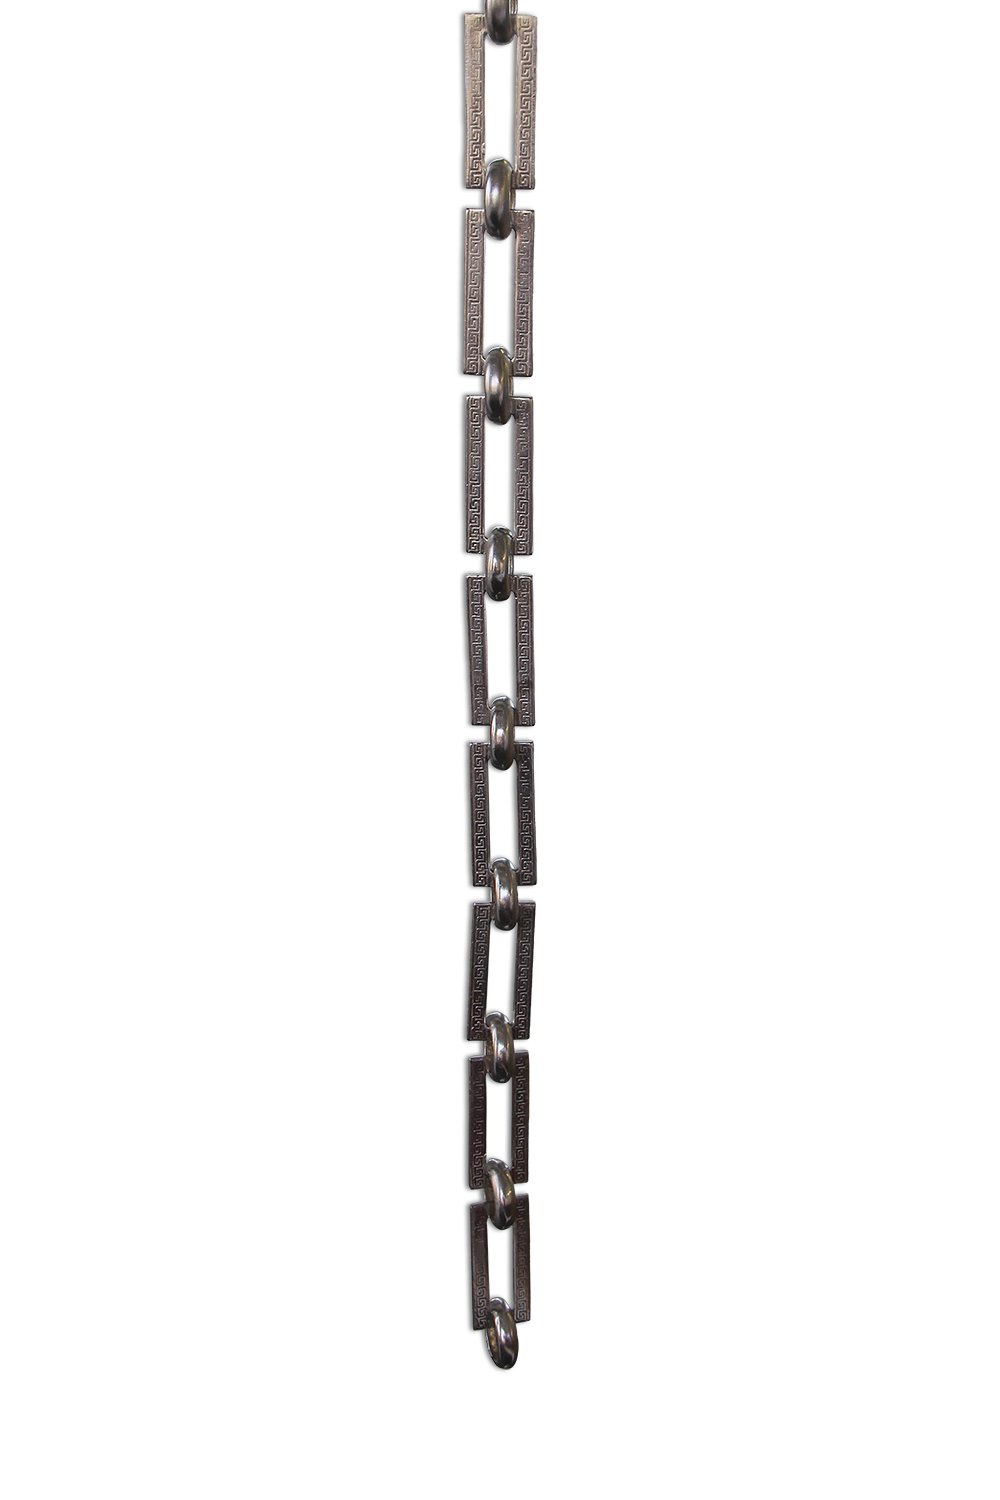 RCH Hardware Decorative Polished Nickel Solid Brass Chain for Hanging, Lighting - Rectangles with Greek Key Design and Unwelded Links (1 foot)